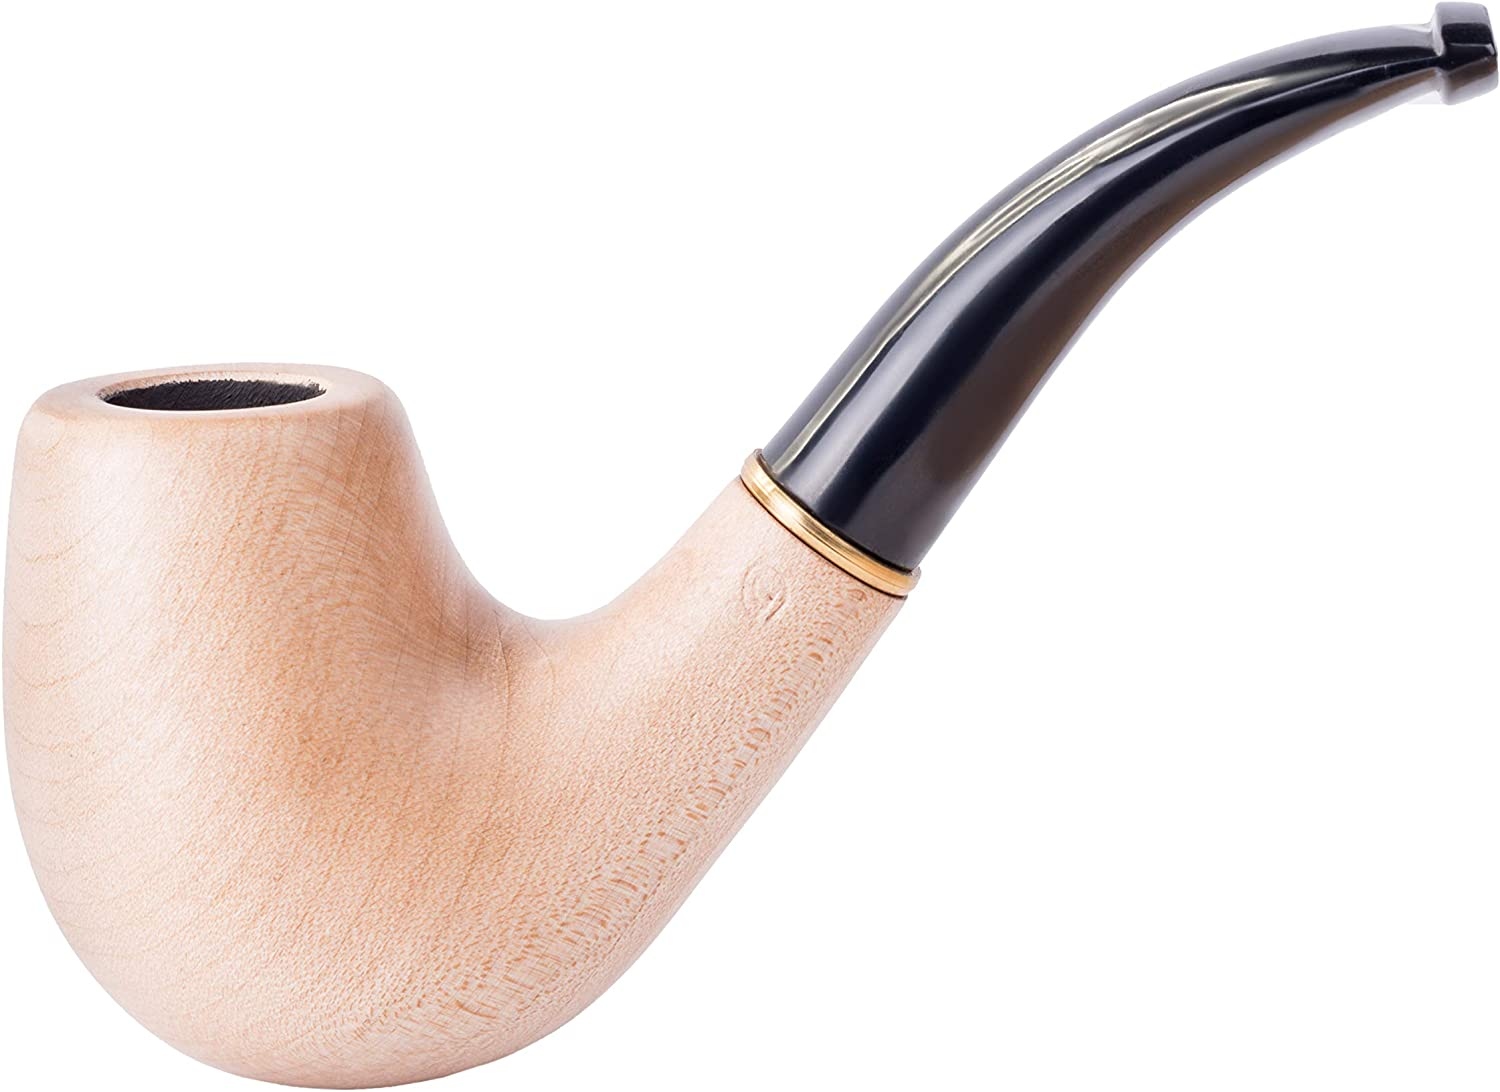 Dr. Watson - Wooden Tobacco Smoking Pipe, Hand Carved, Fits 9mm Filter, Comes with Pouch, Boxed (Classic, White)